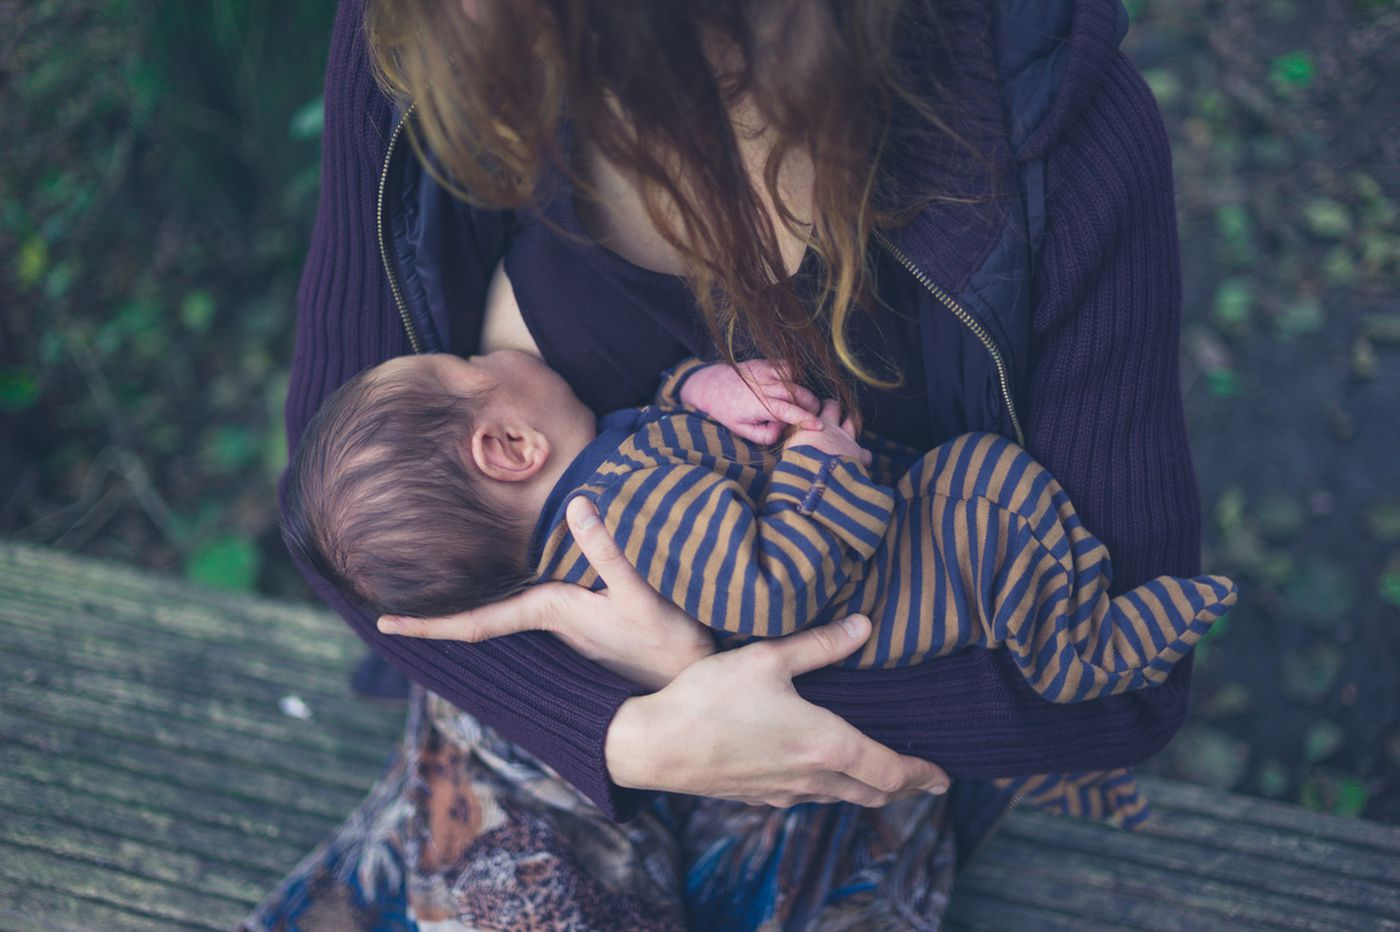 Trump administration making uninformed, dangerous choices on breastfeeding | Opinion